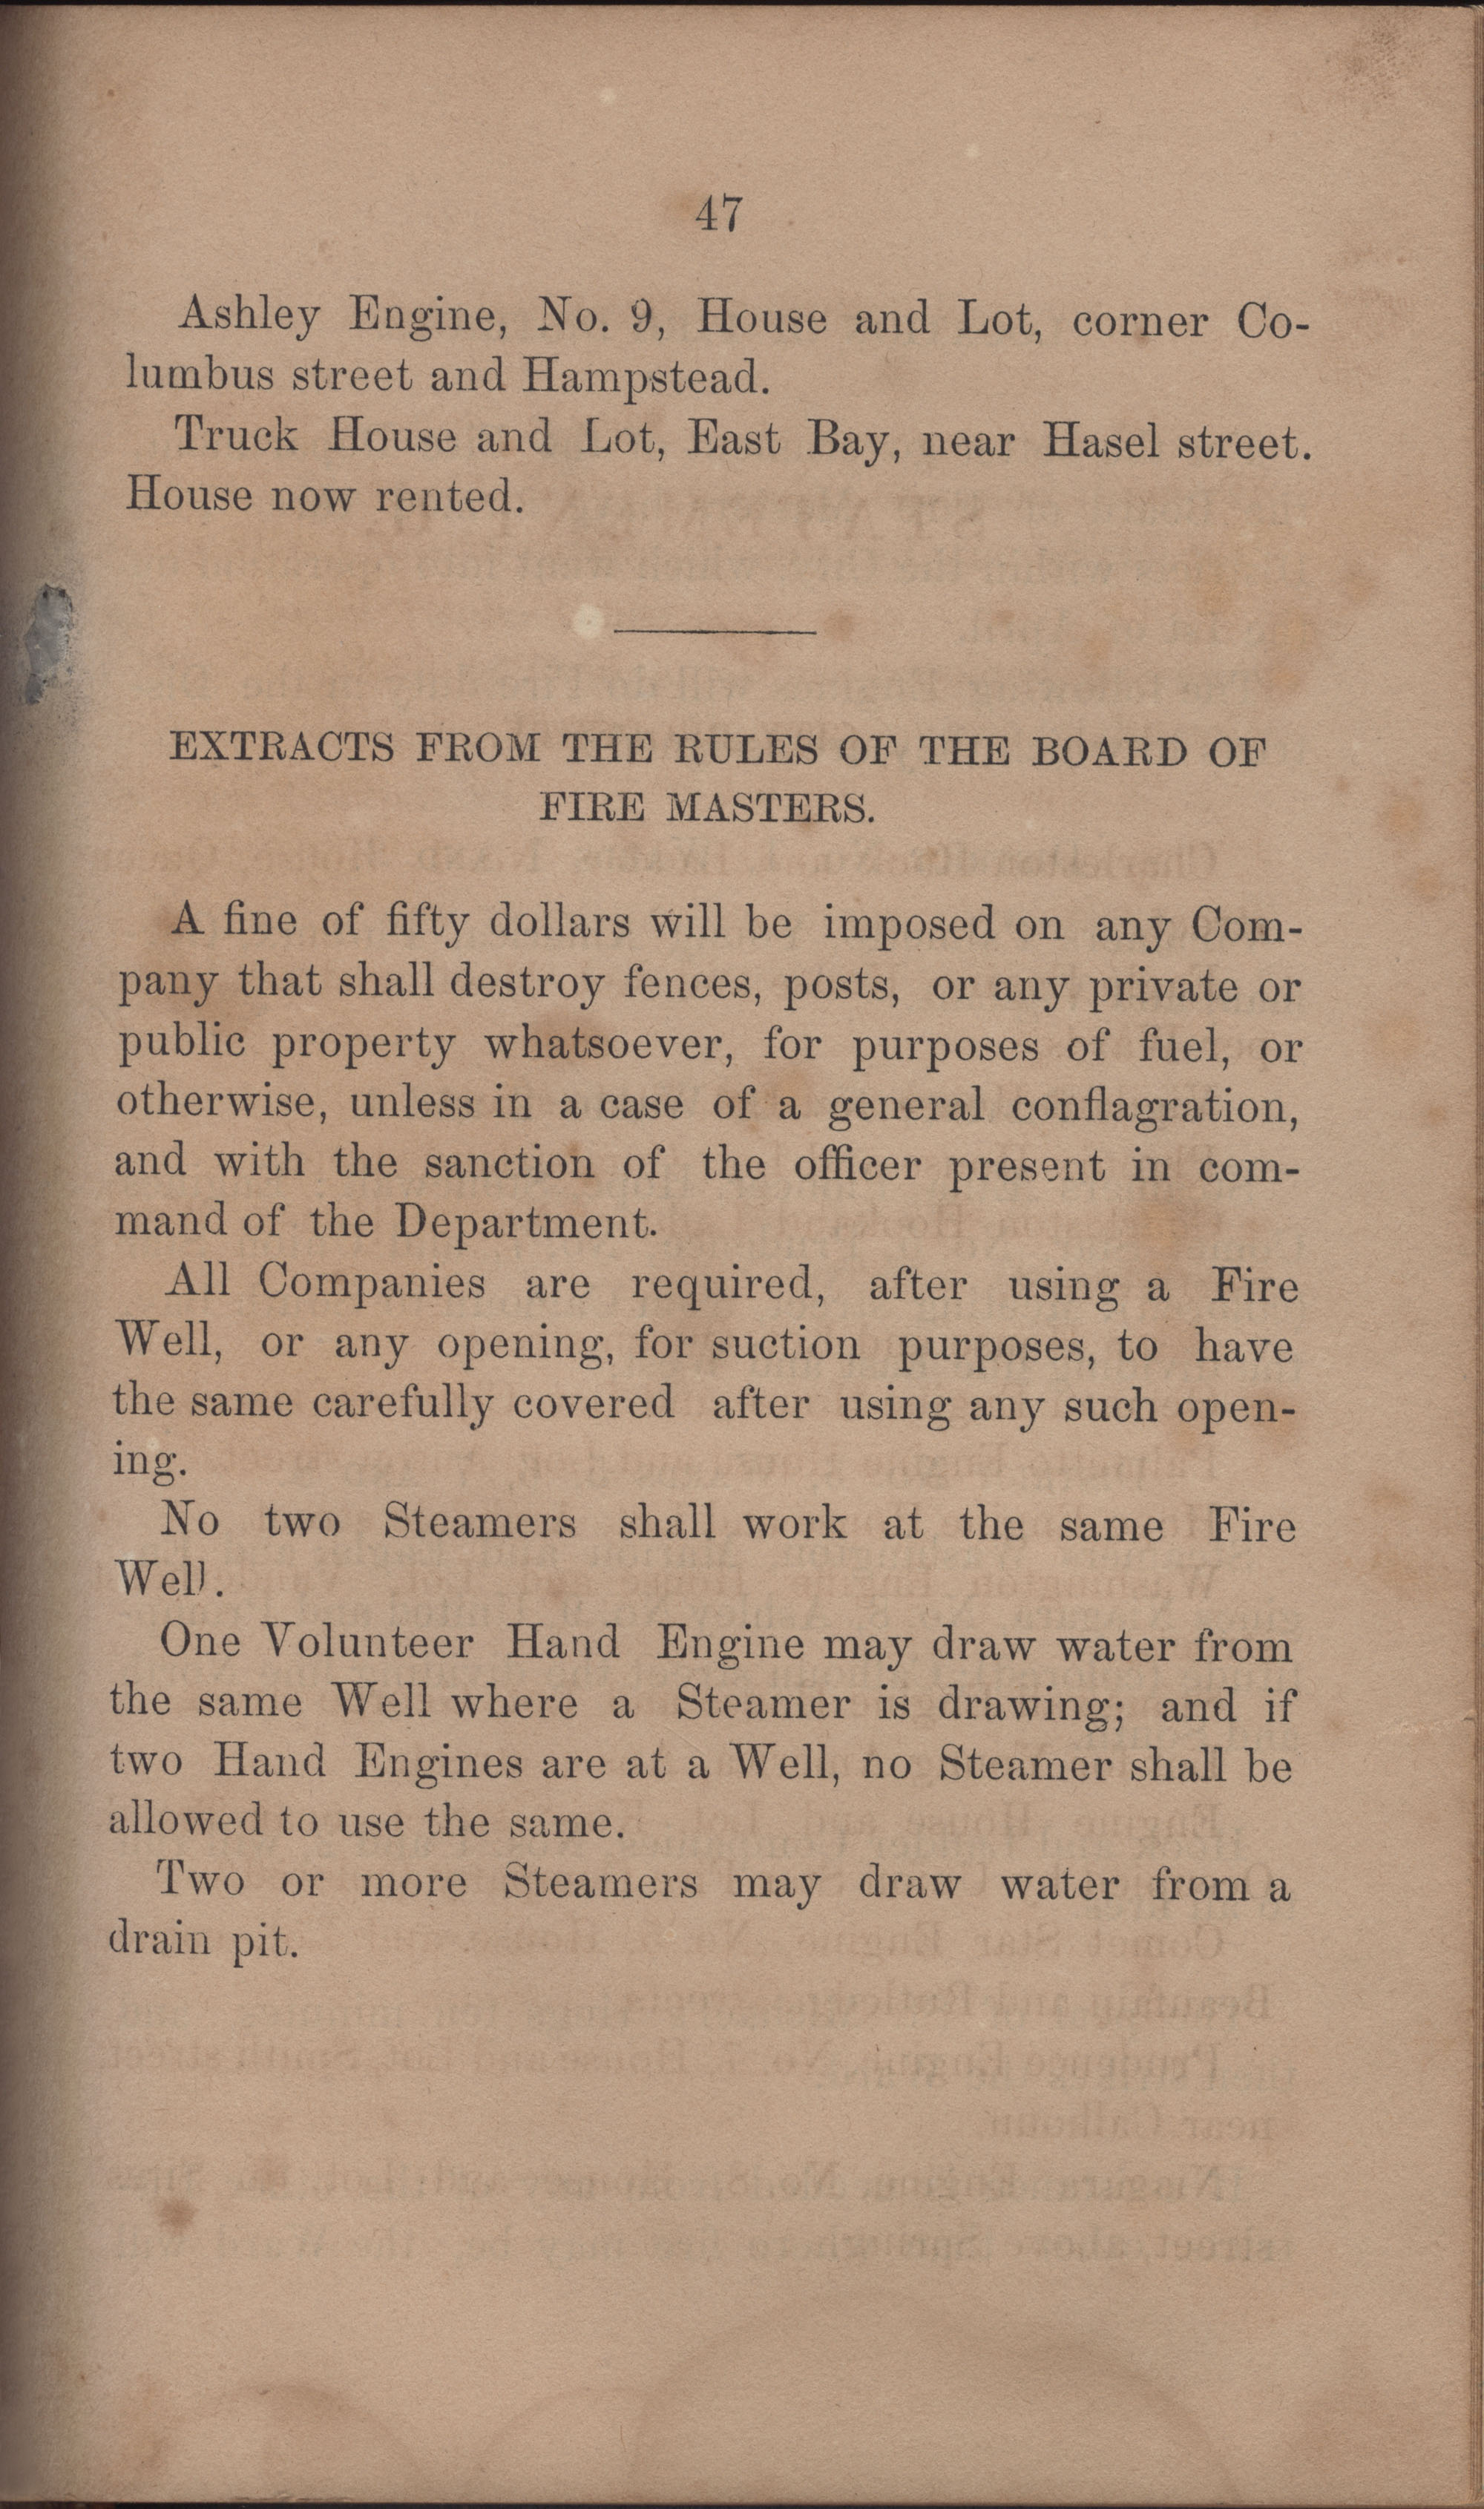 Annual Report of the Chief of the Fire Department of the City of Charleston, page 394